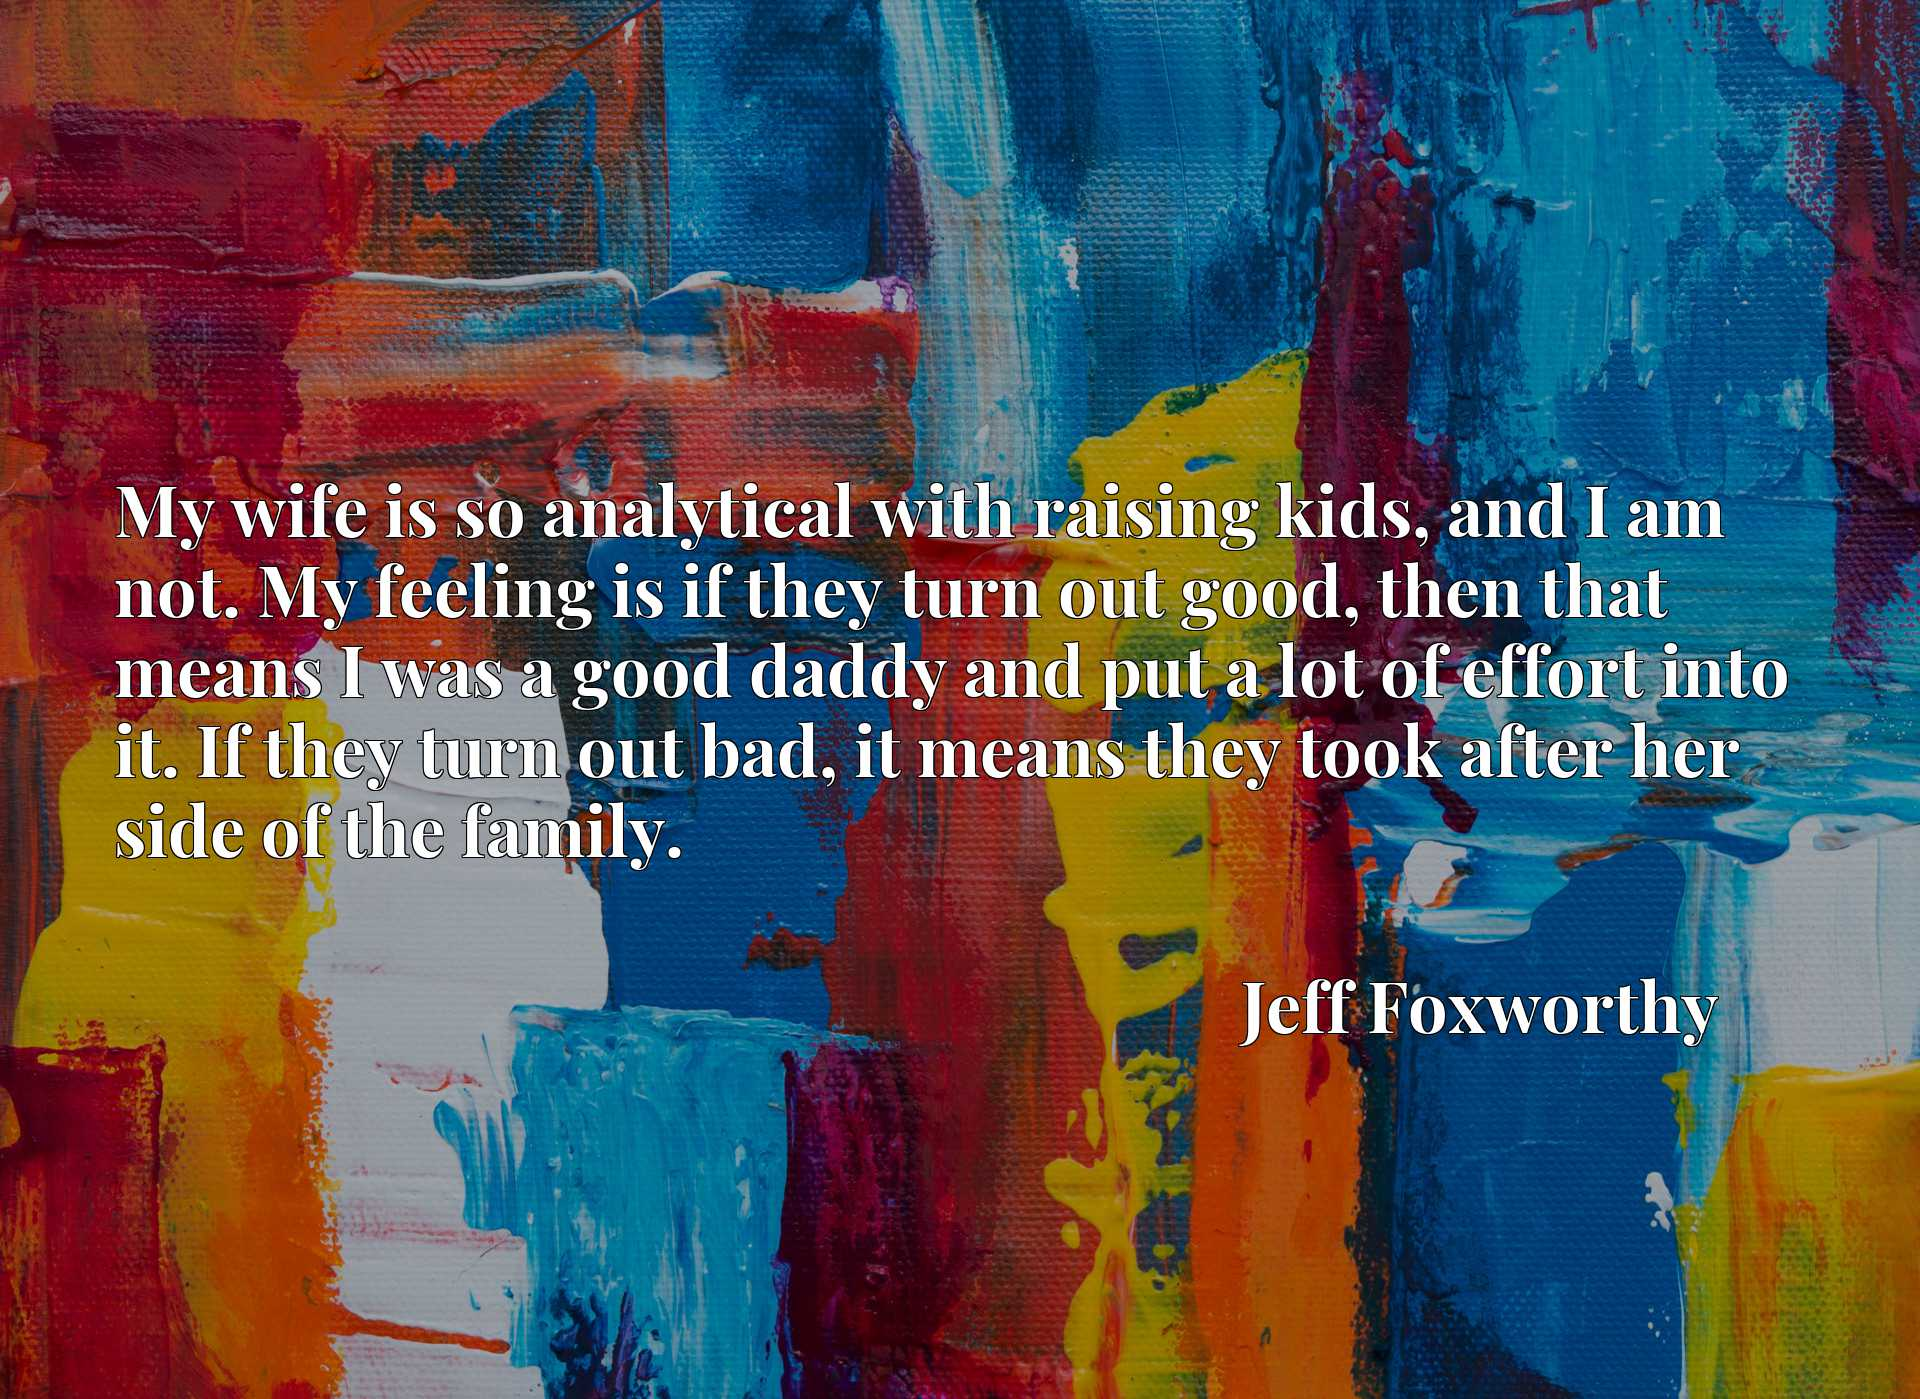 My wife is so analytical with raising kids, and I am not. My feeling is if they turn out good, then that means I was a good daddy and put a lot of effort into it. If they turn out bad, it means they took after her side of the family.